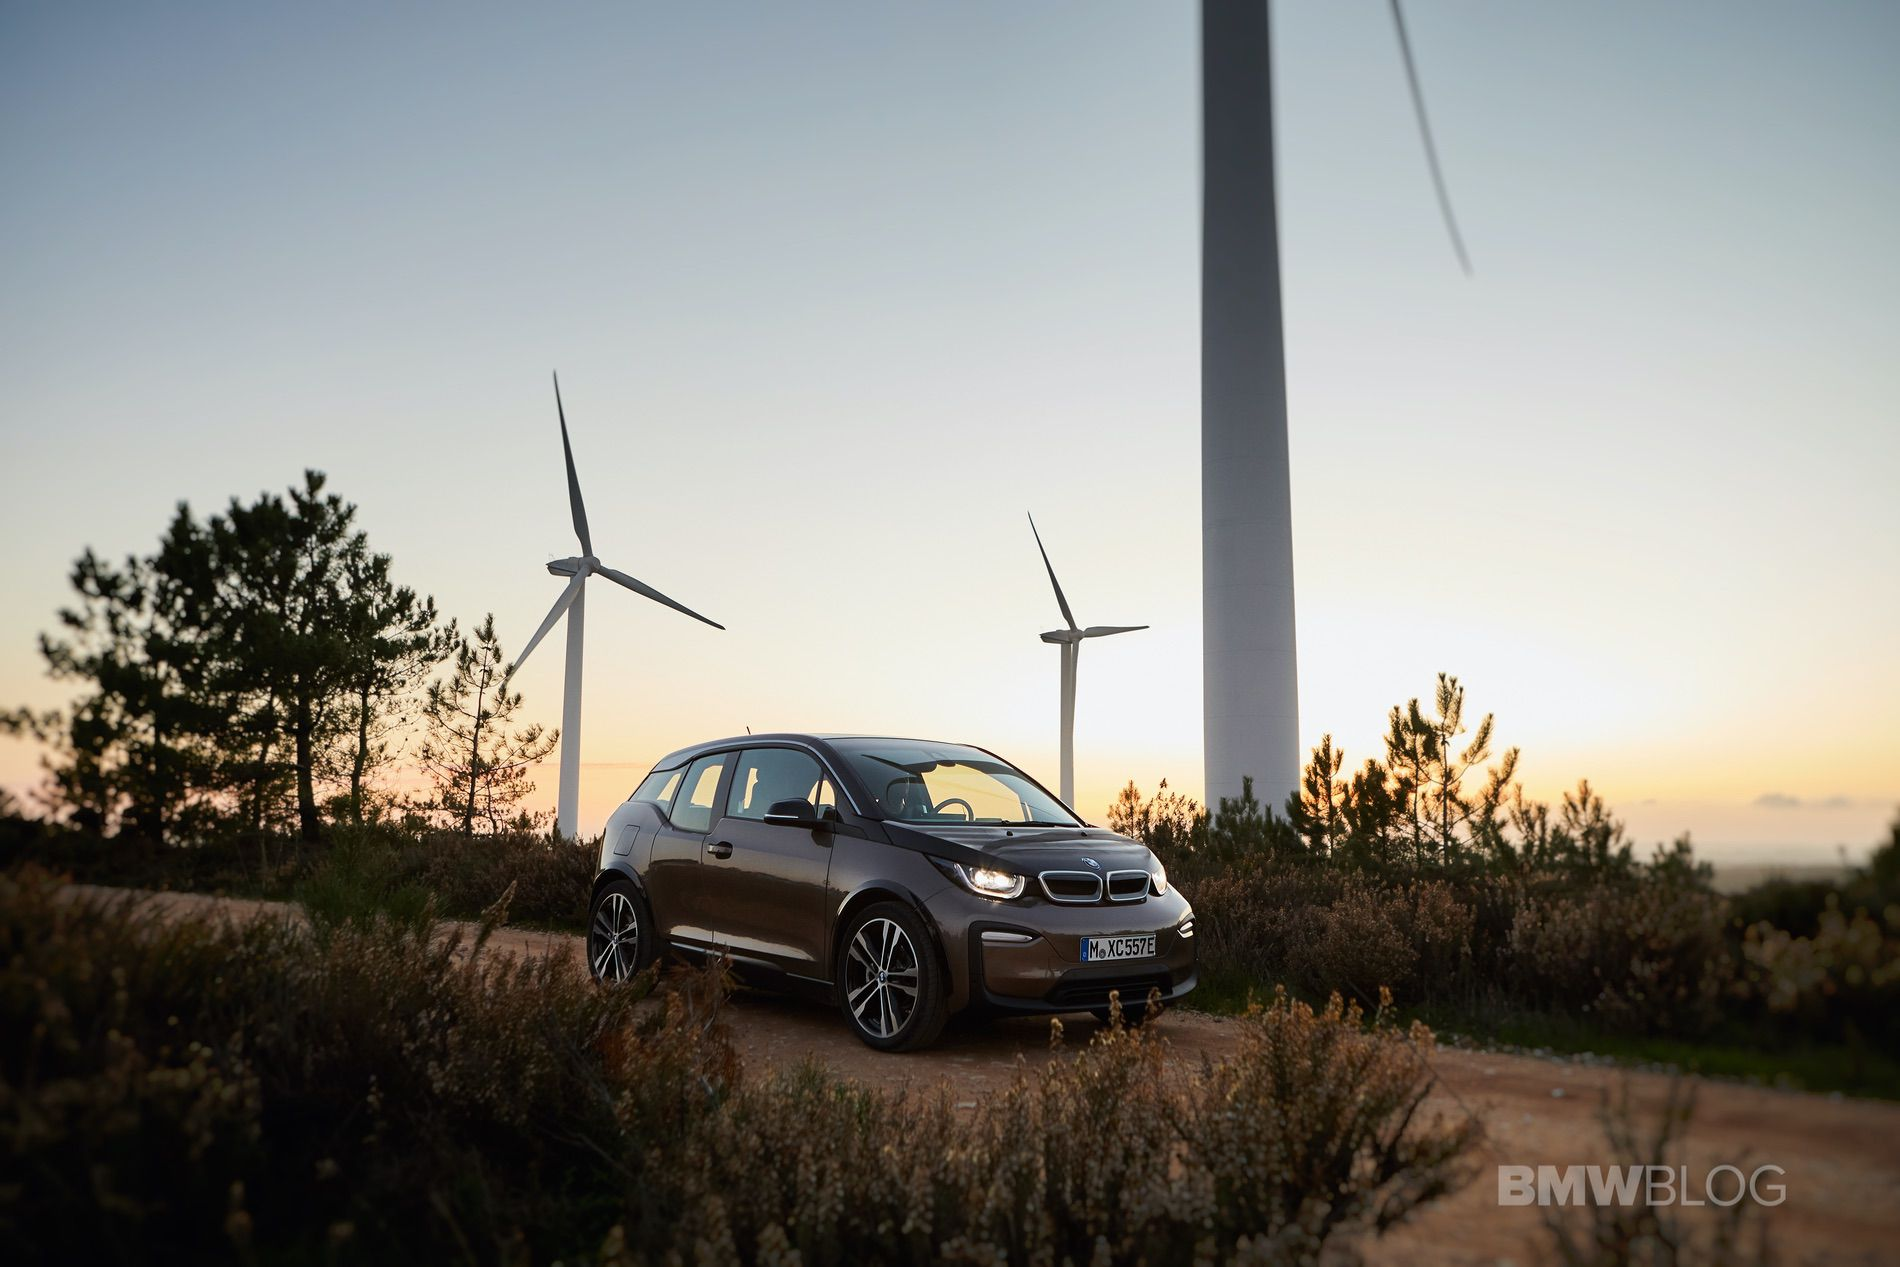 Could BMW use hydrogen to charge its electric cars?